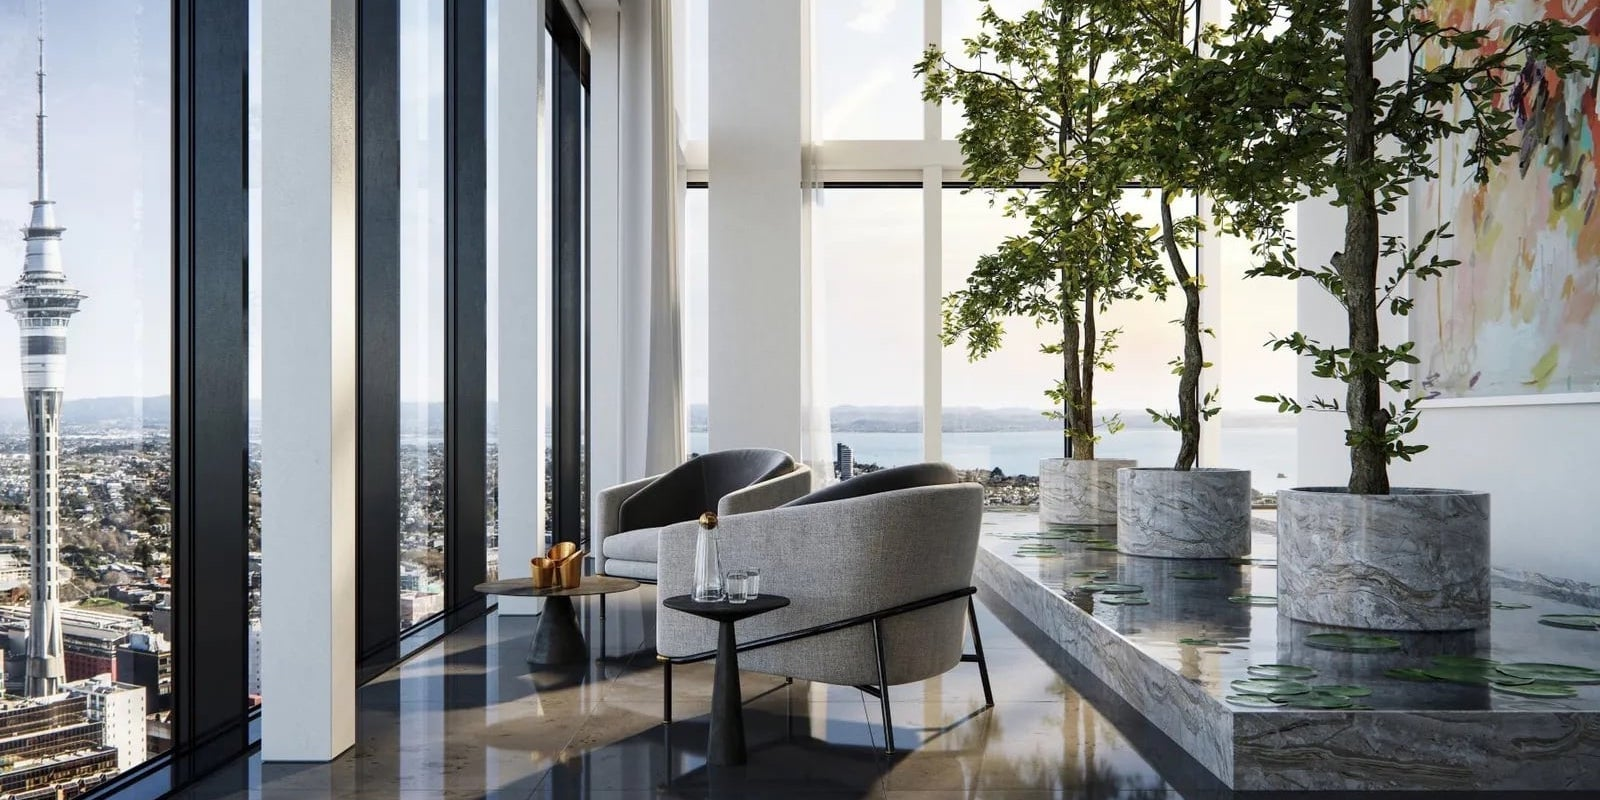 Home As Oasis | 6 Nature-Inspired Trends To Incorporate Into Your Design